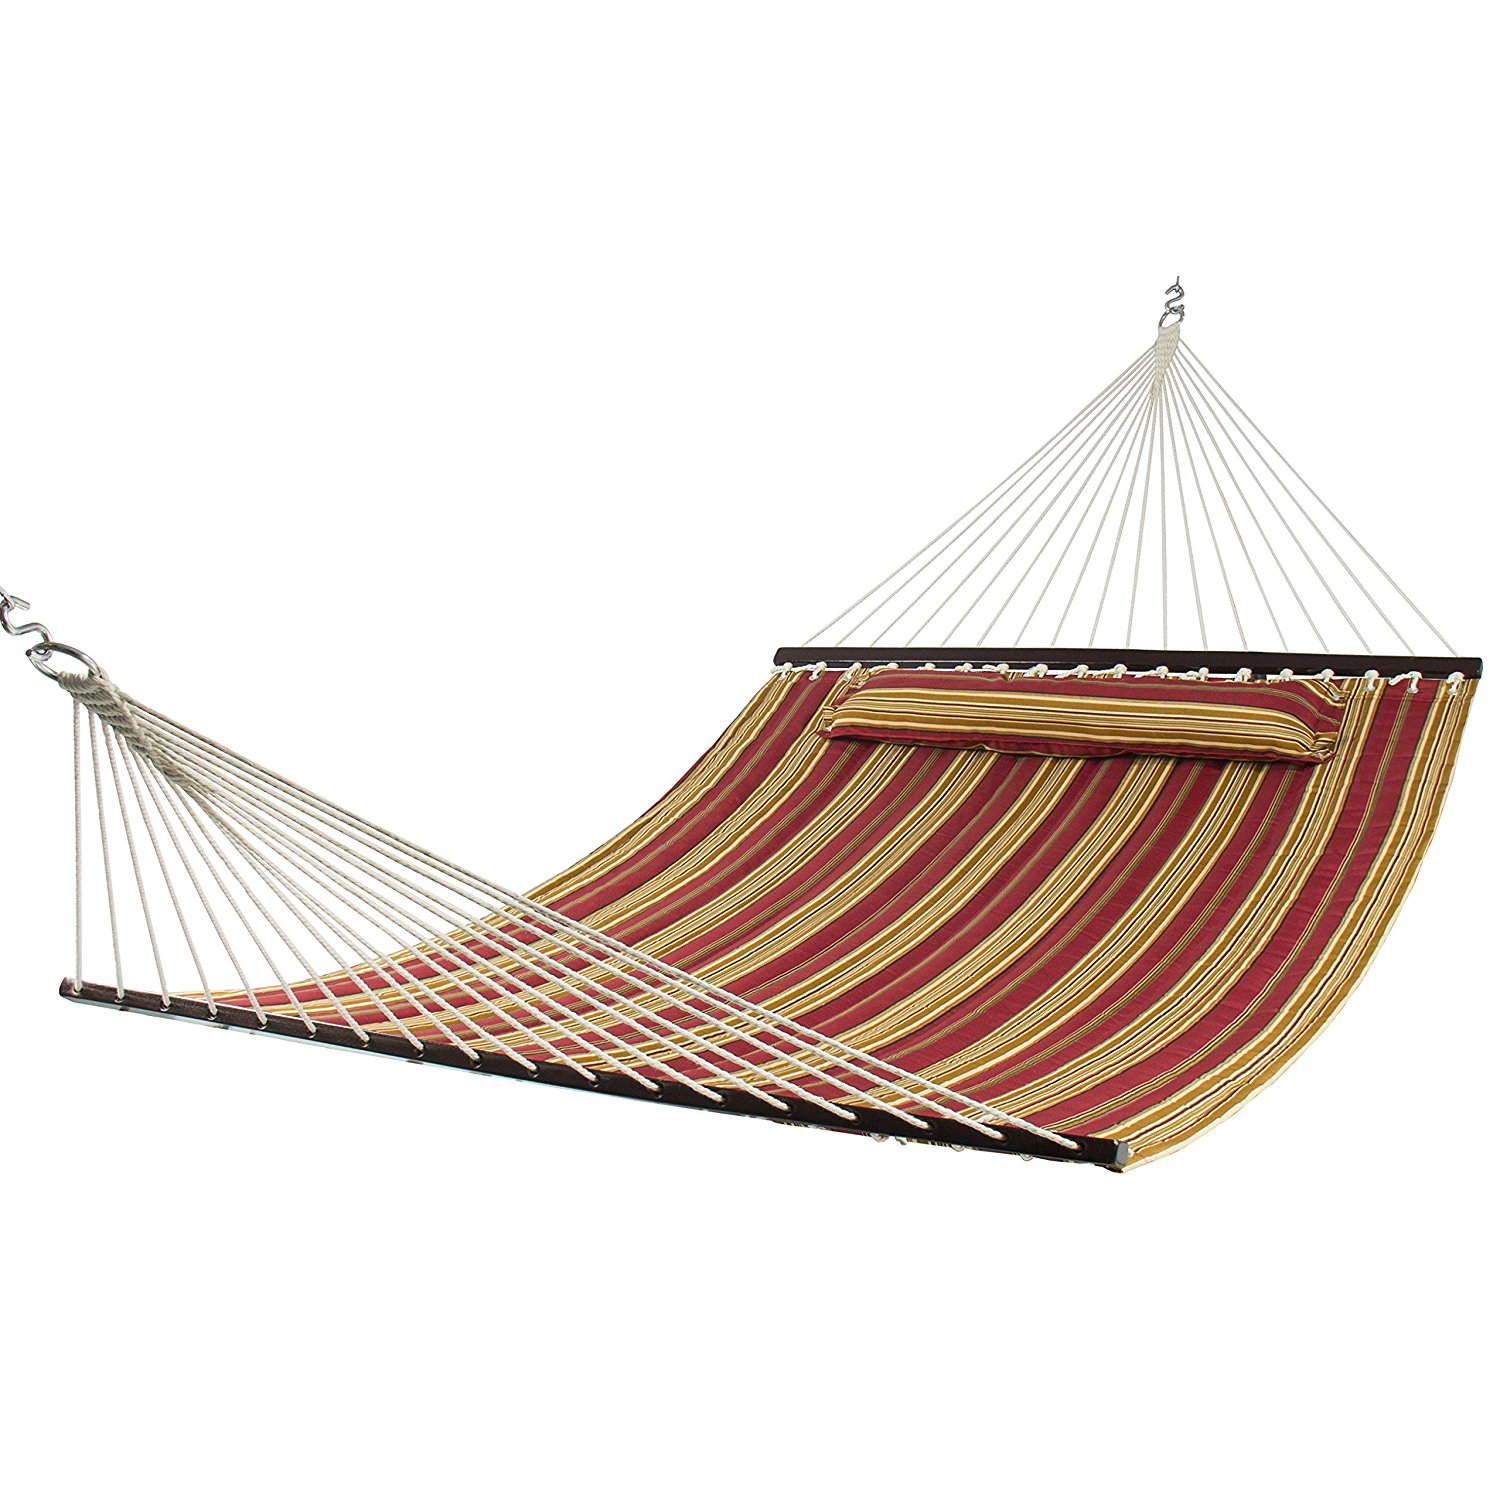 Best choice products hammock quilted hammocks - How to make a cloth hammock ...